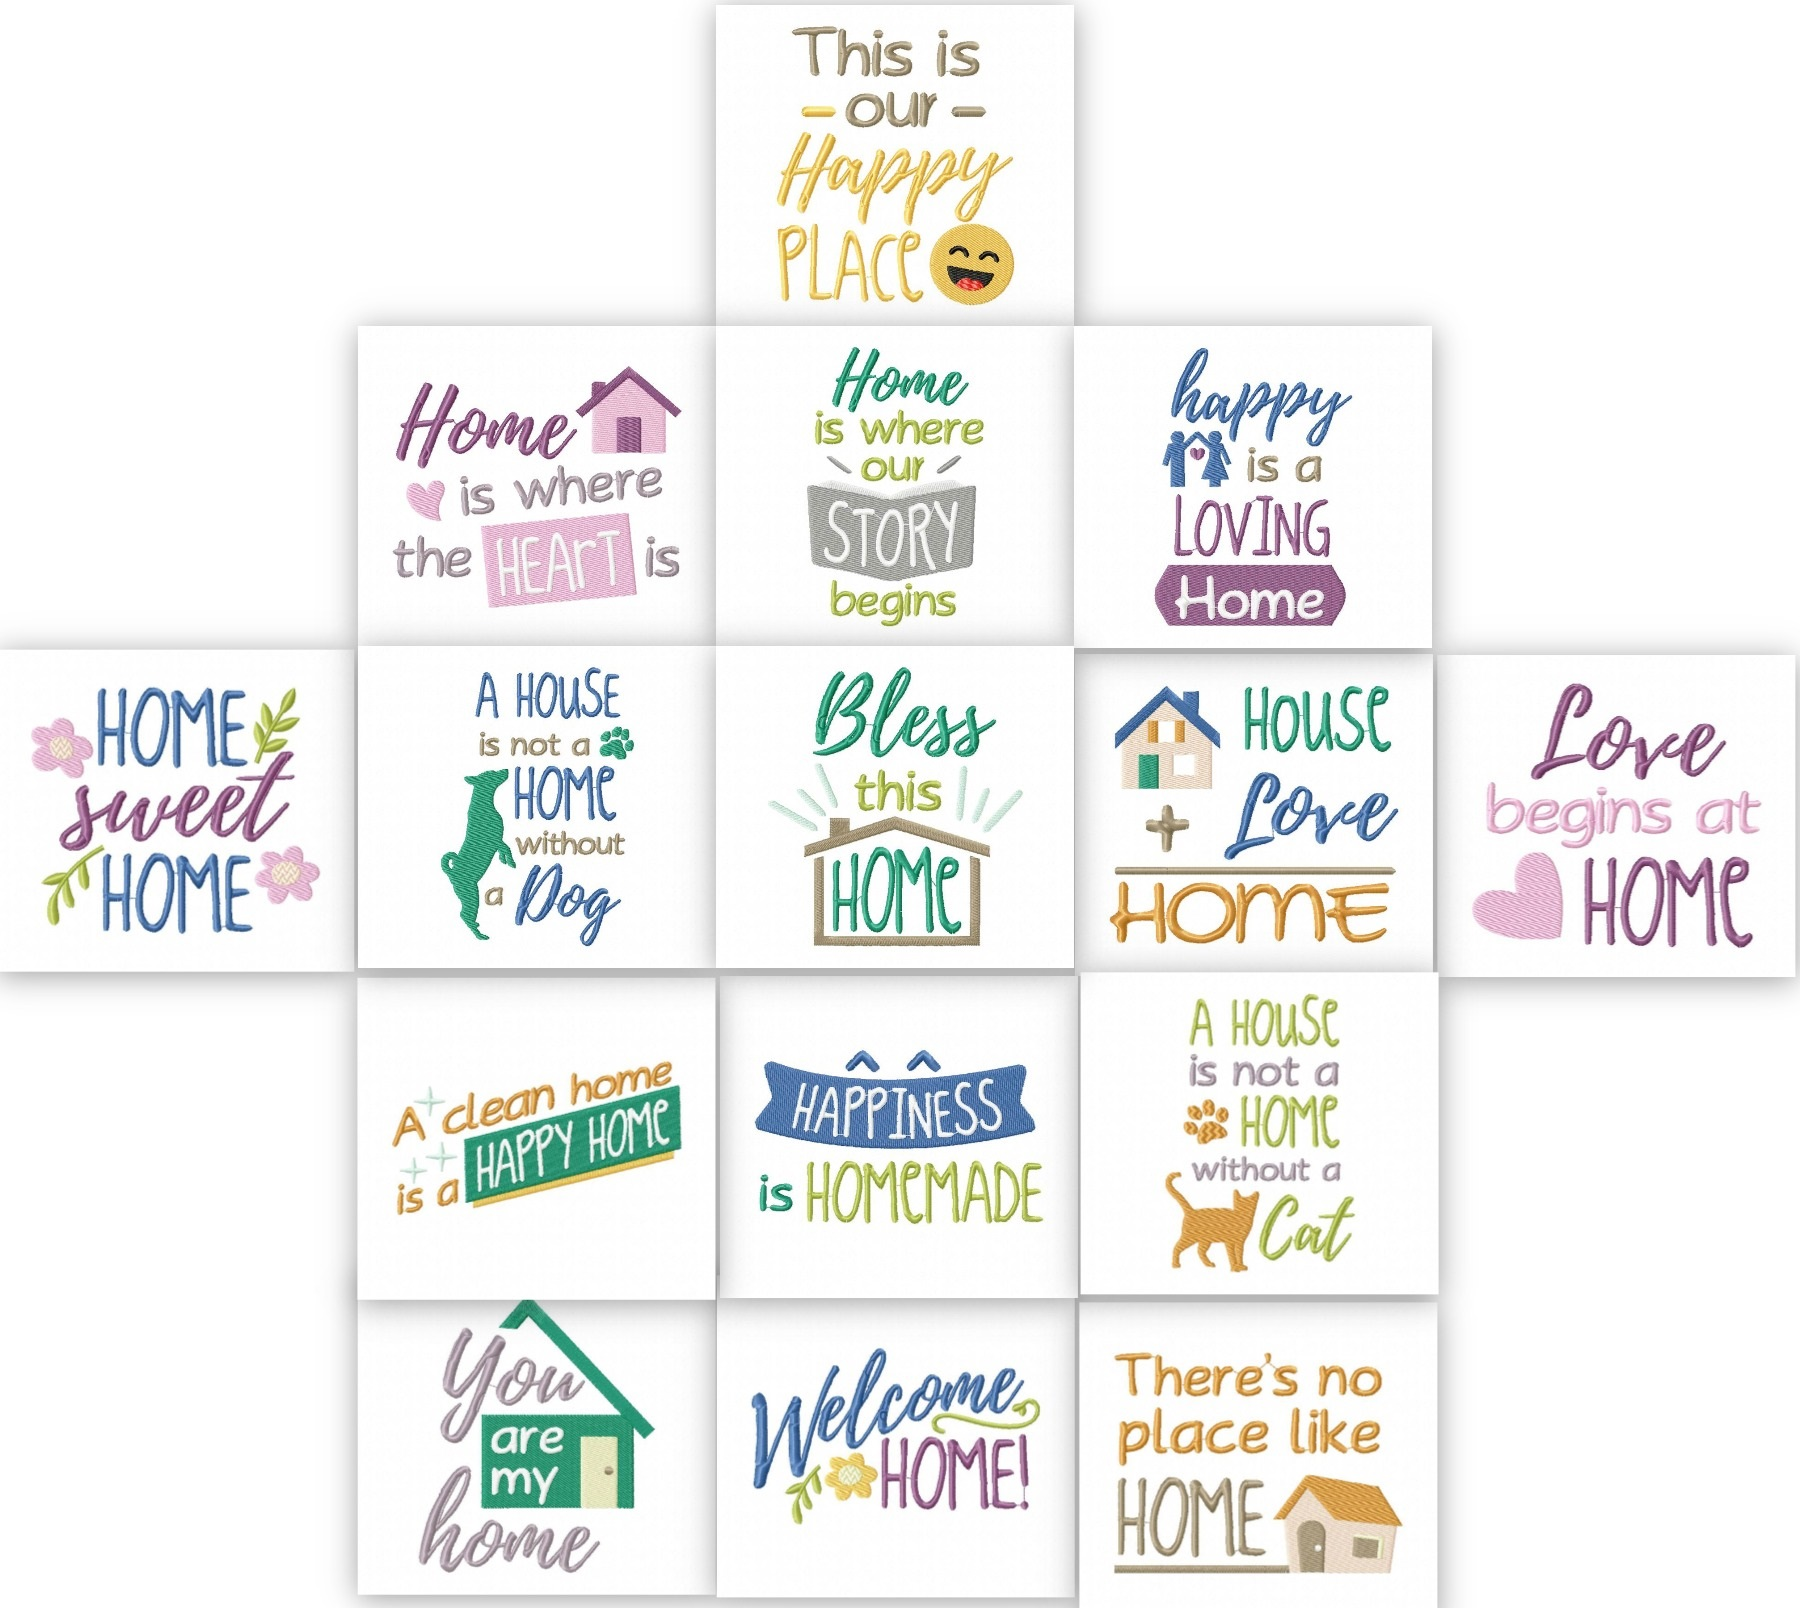 home sweet home quotes embroidery pack embroidery super deal